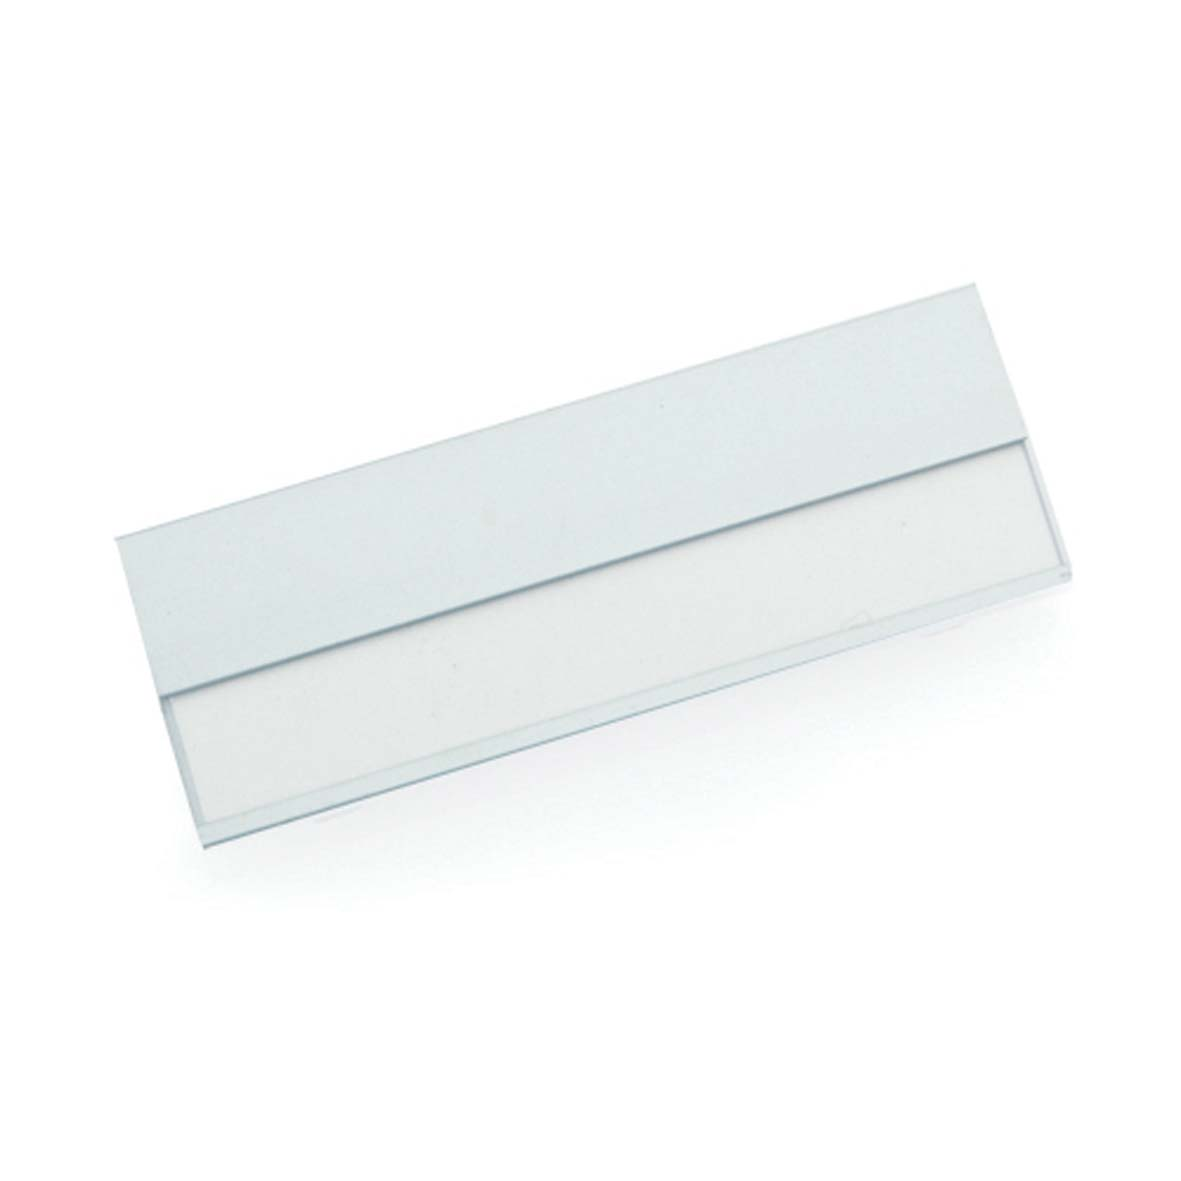 Aluminium name badge - White pf-372609